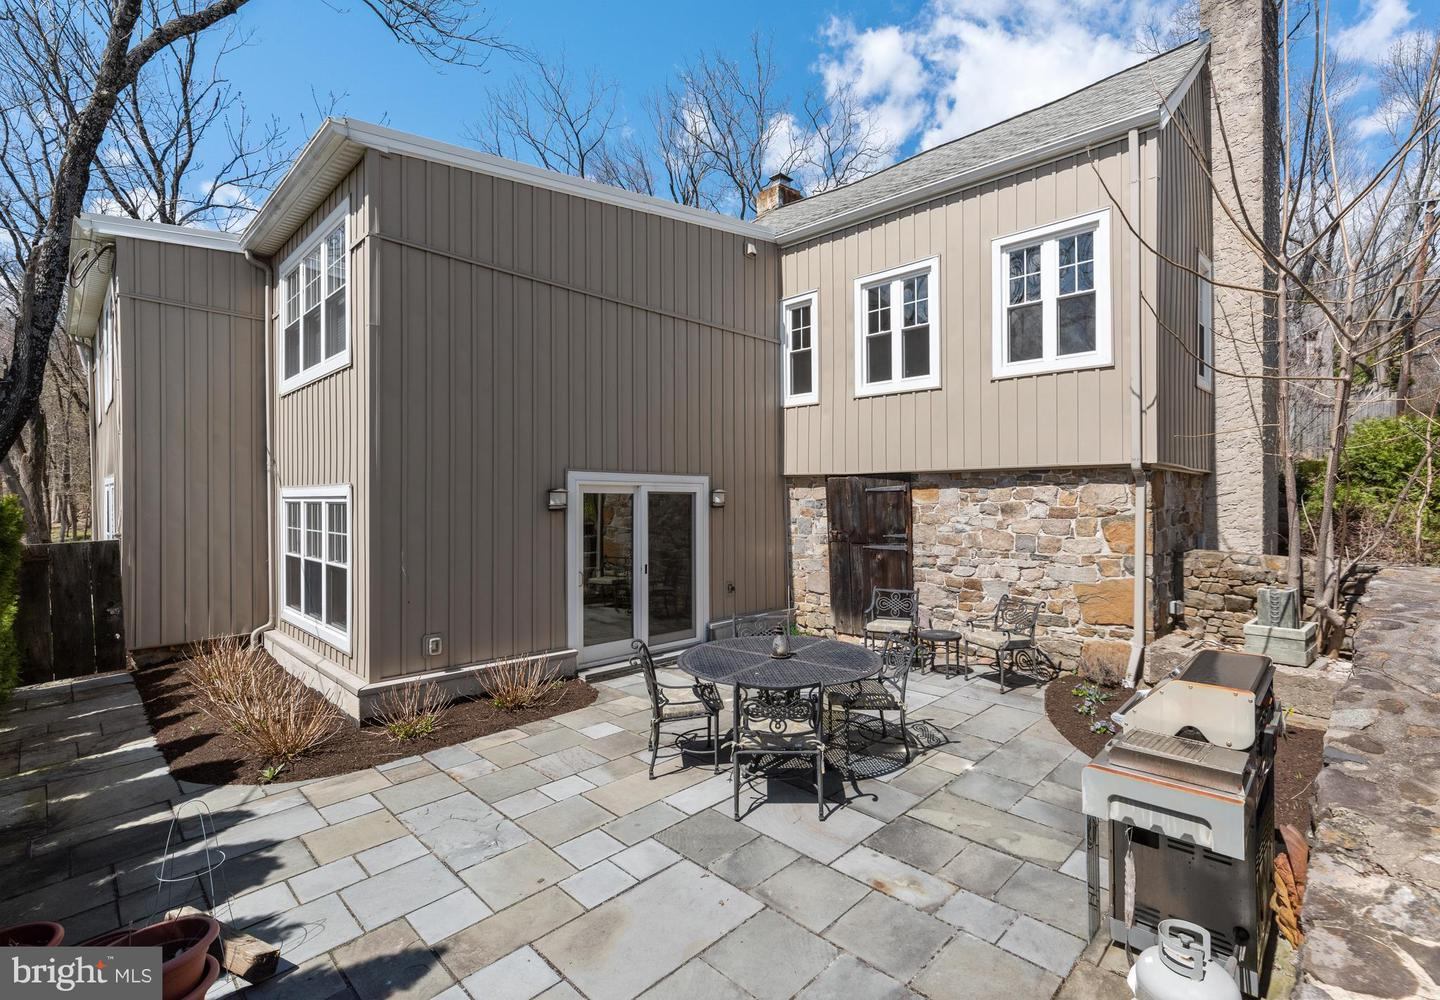 1225 EAGLE RD, NEWTOWN, PA